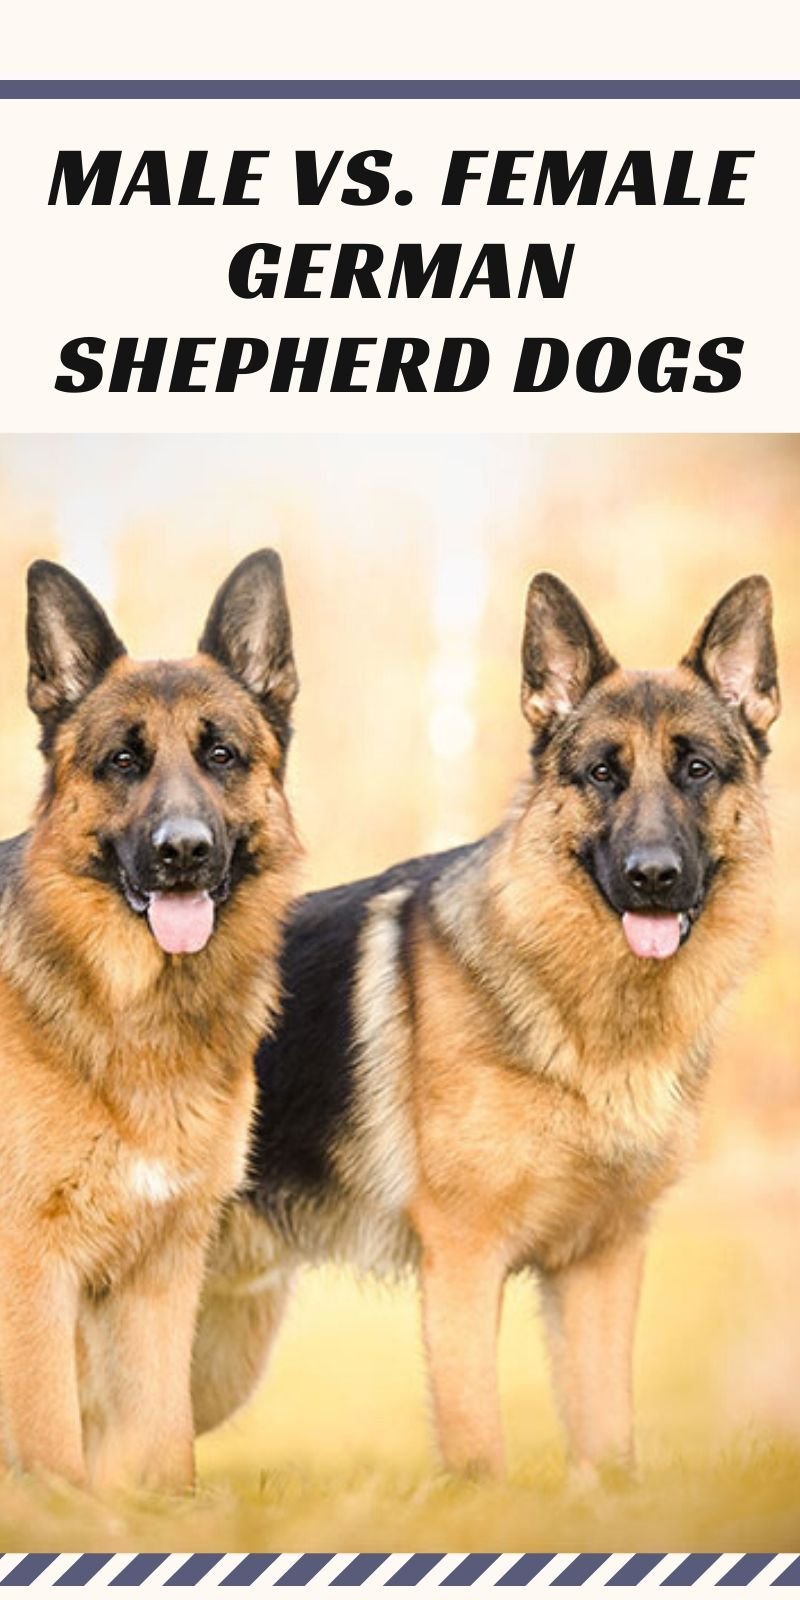 Male Vs Female German Shepherd Dogs Our Deer In 2020 Female German Shepherd Shepherd Dog German Shepherd